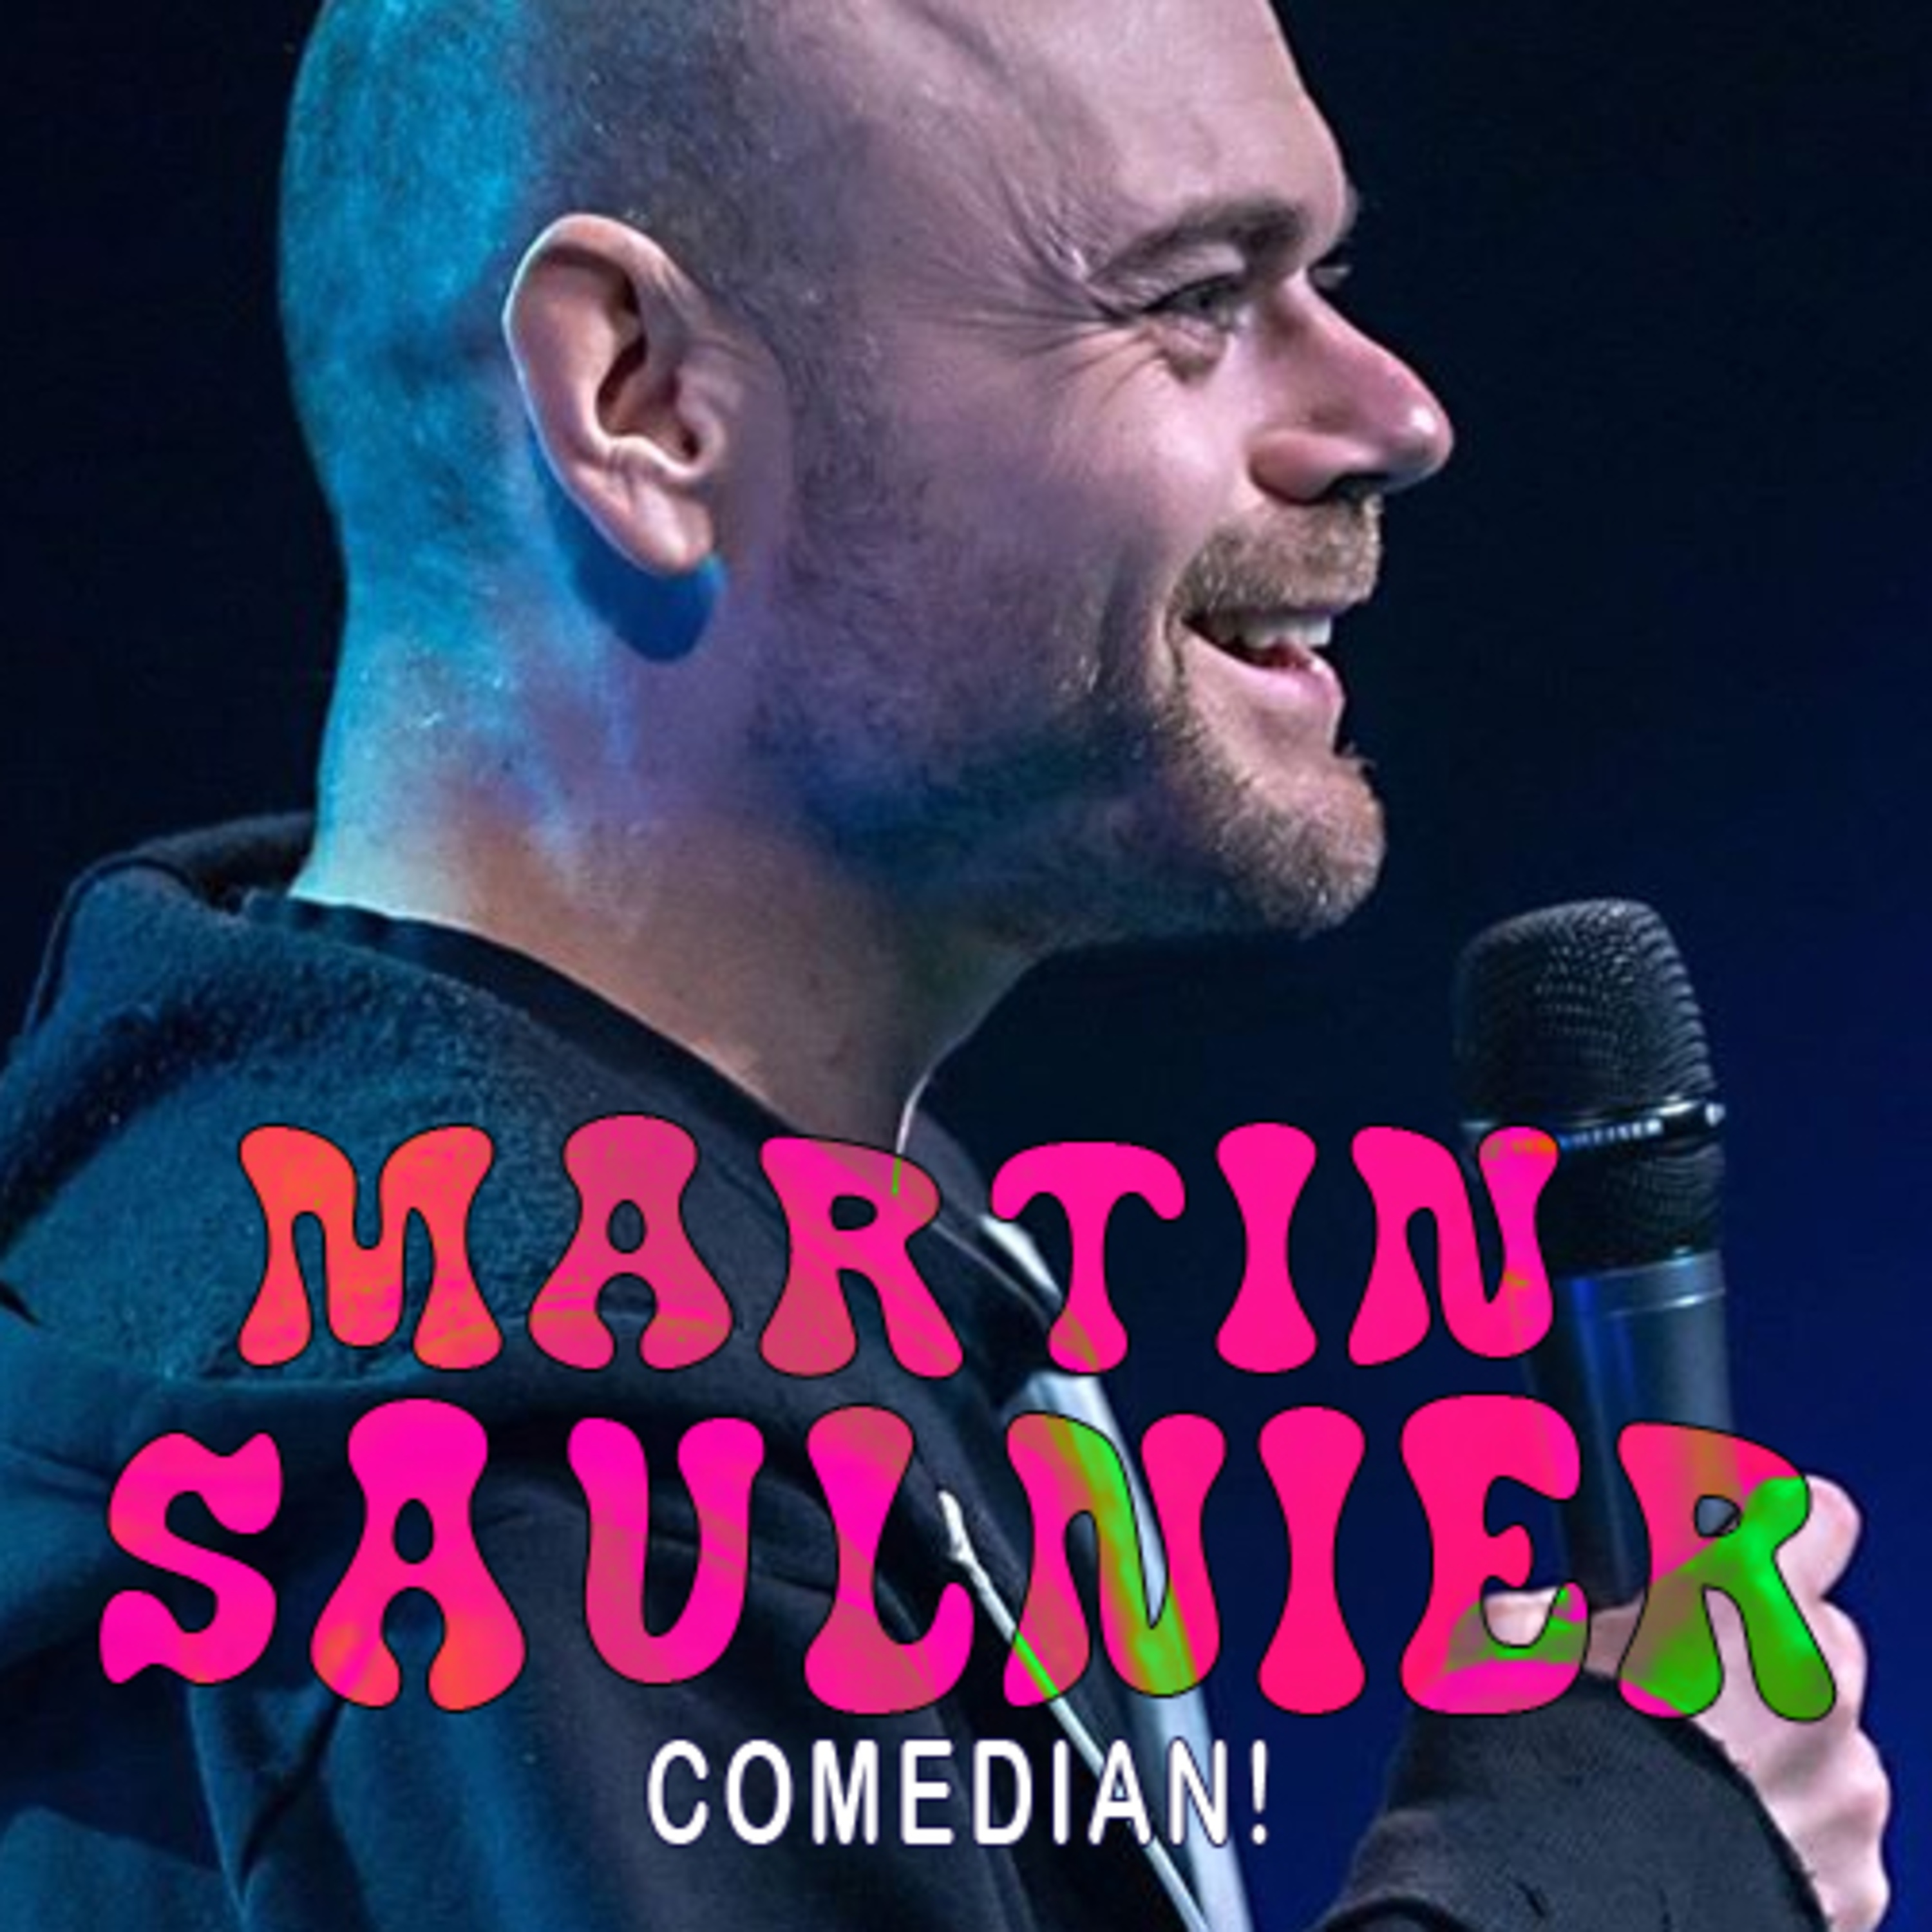 EP 45 - Marty Saulnier - Comedian!